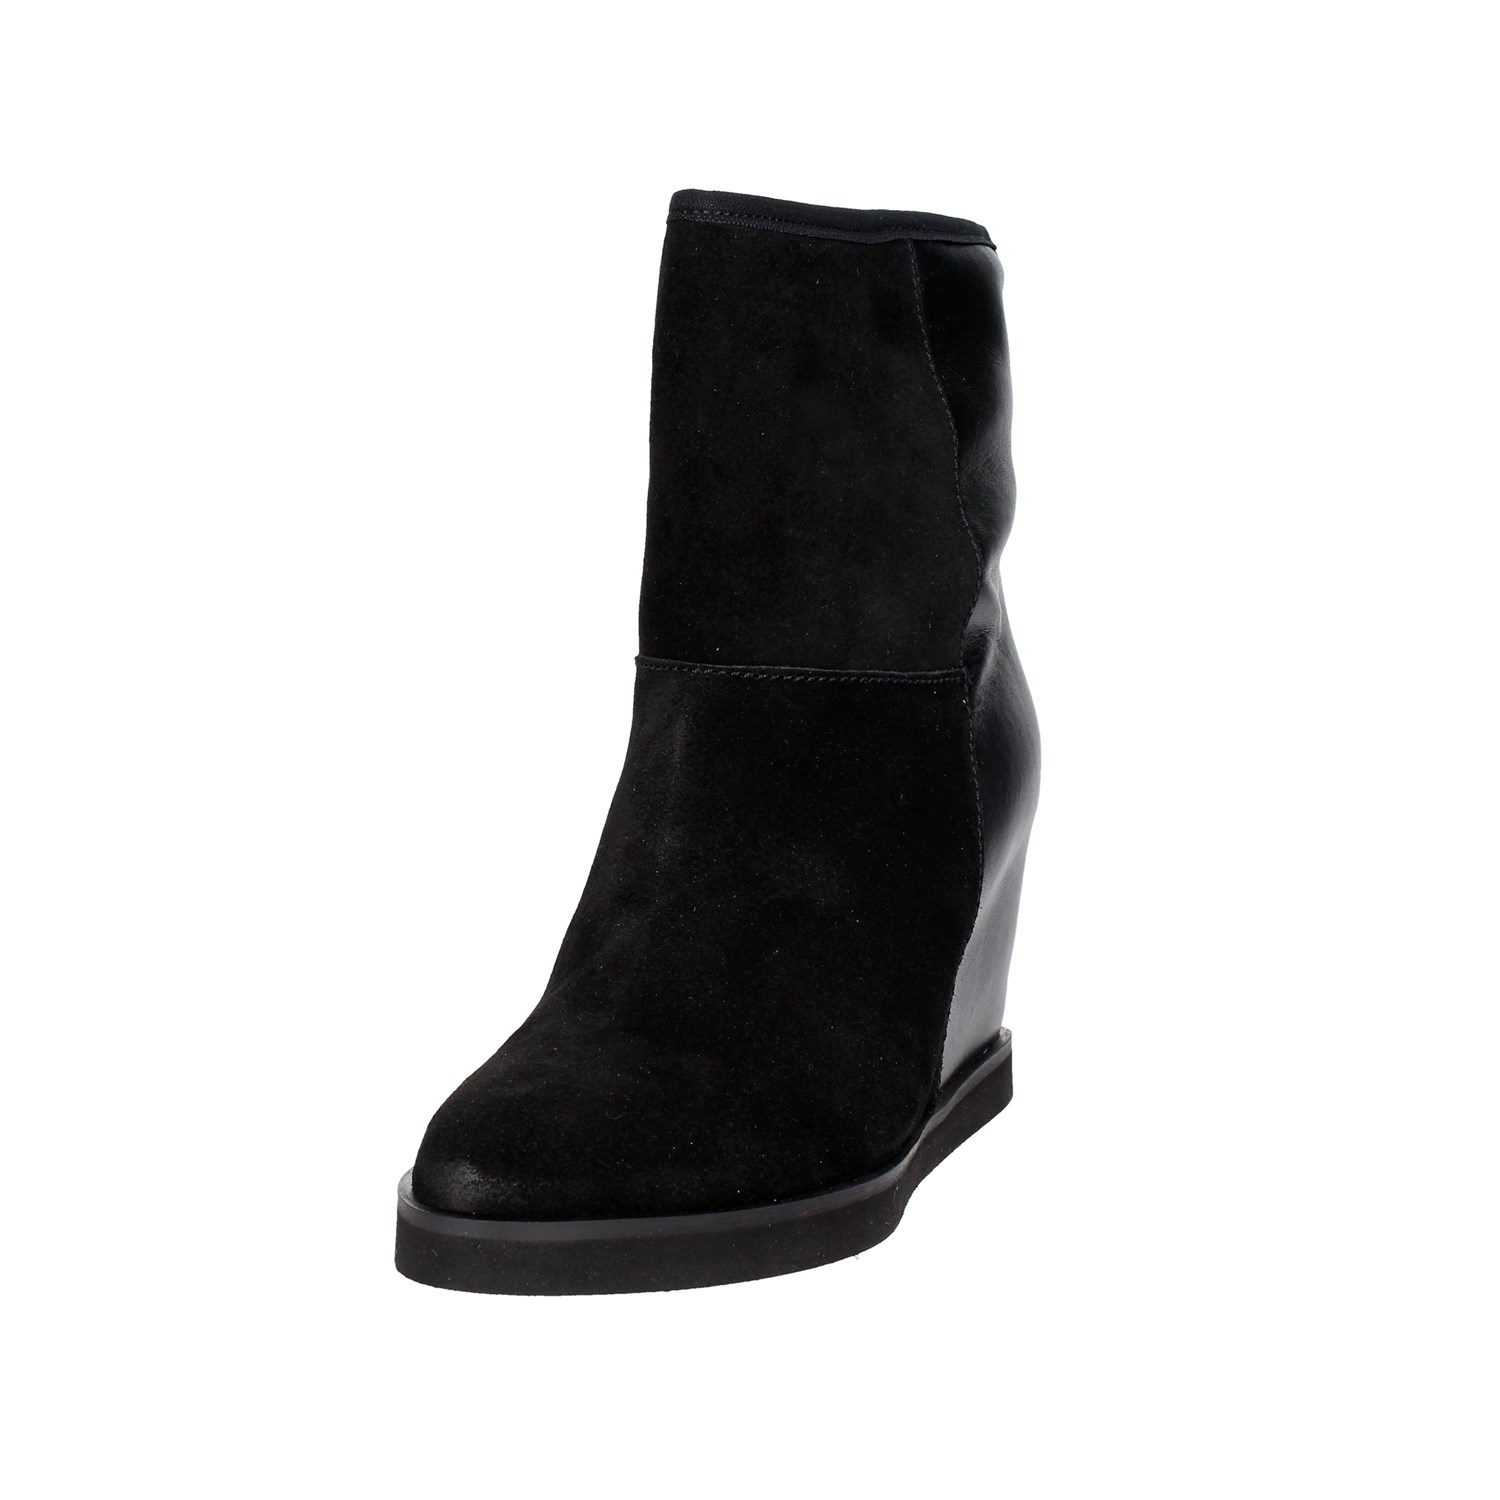 Ankle Boots Boots Boots With Wedge Heels Women Frau 82P4 Fall/Winter 7cb5ab